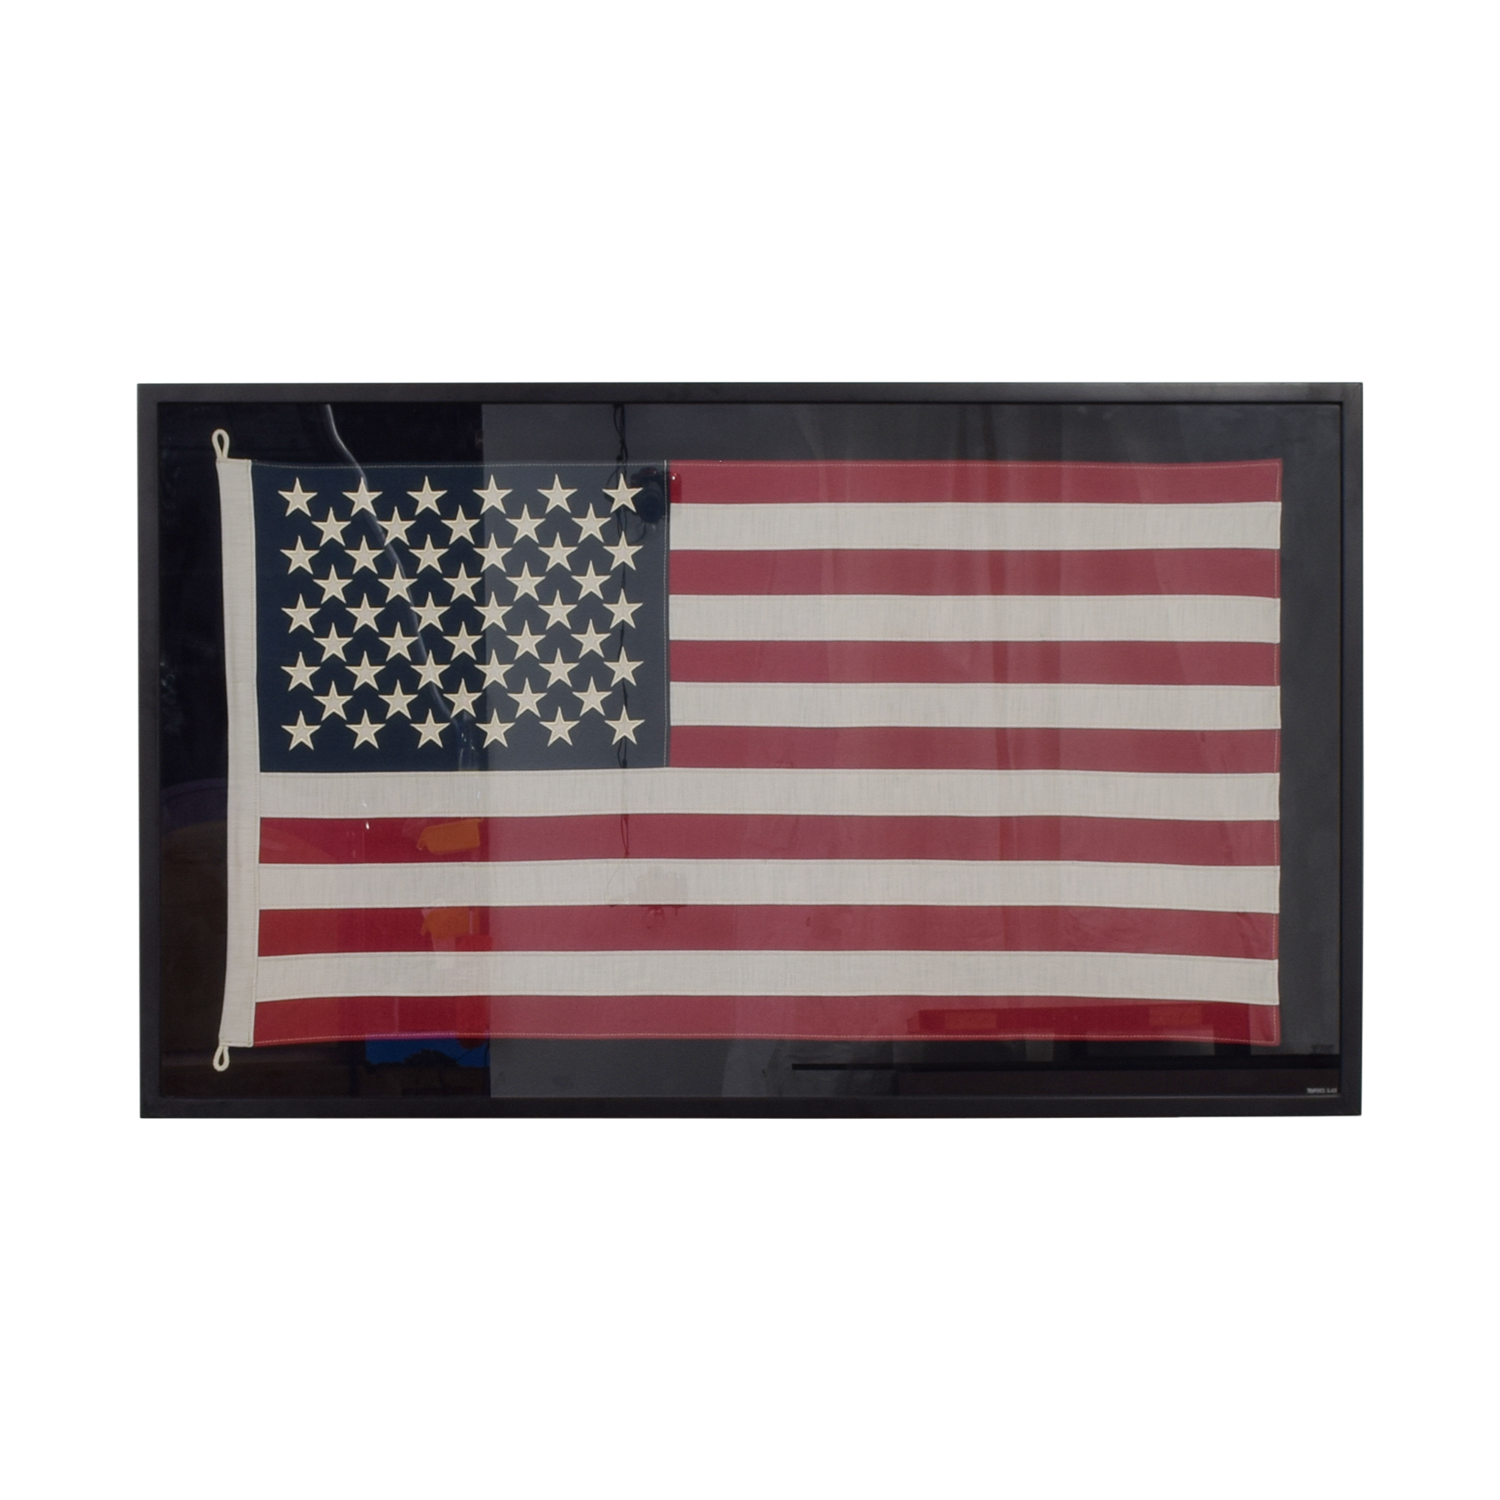 Restoration Hardware Restoration Hardware USA Framed Flag nj